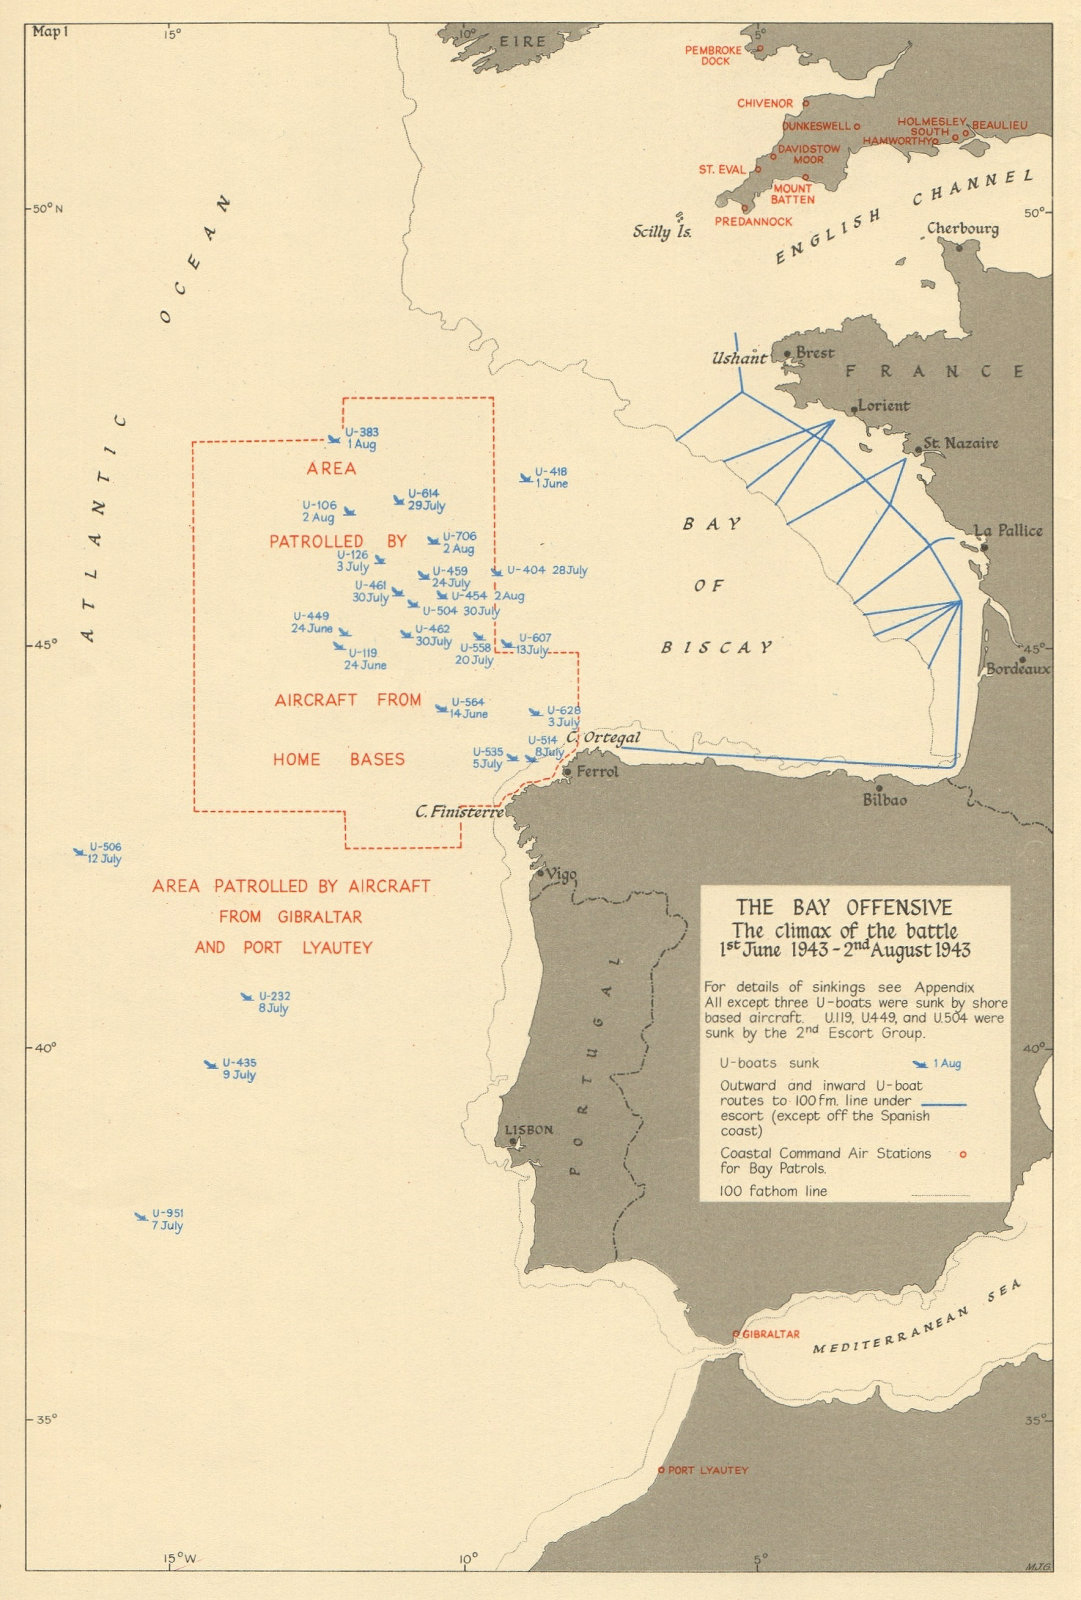 Associate Product Bay of Biscay. U-Boat sinkings. Battle of the Atlantic June-July 1943 1954 map